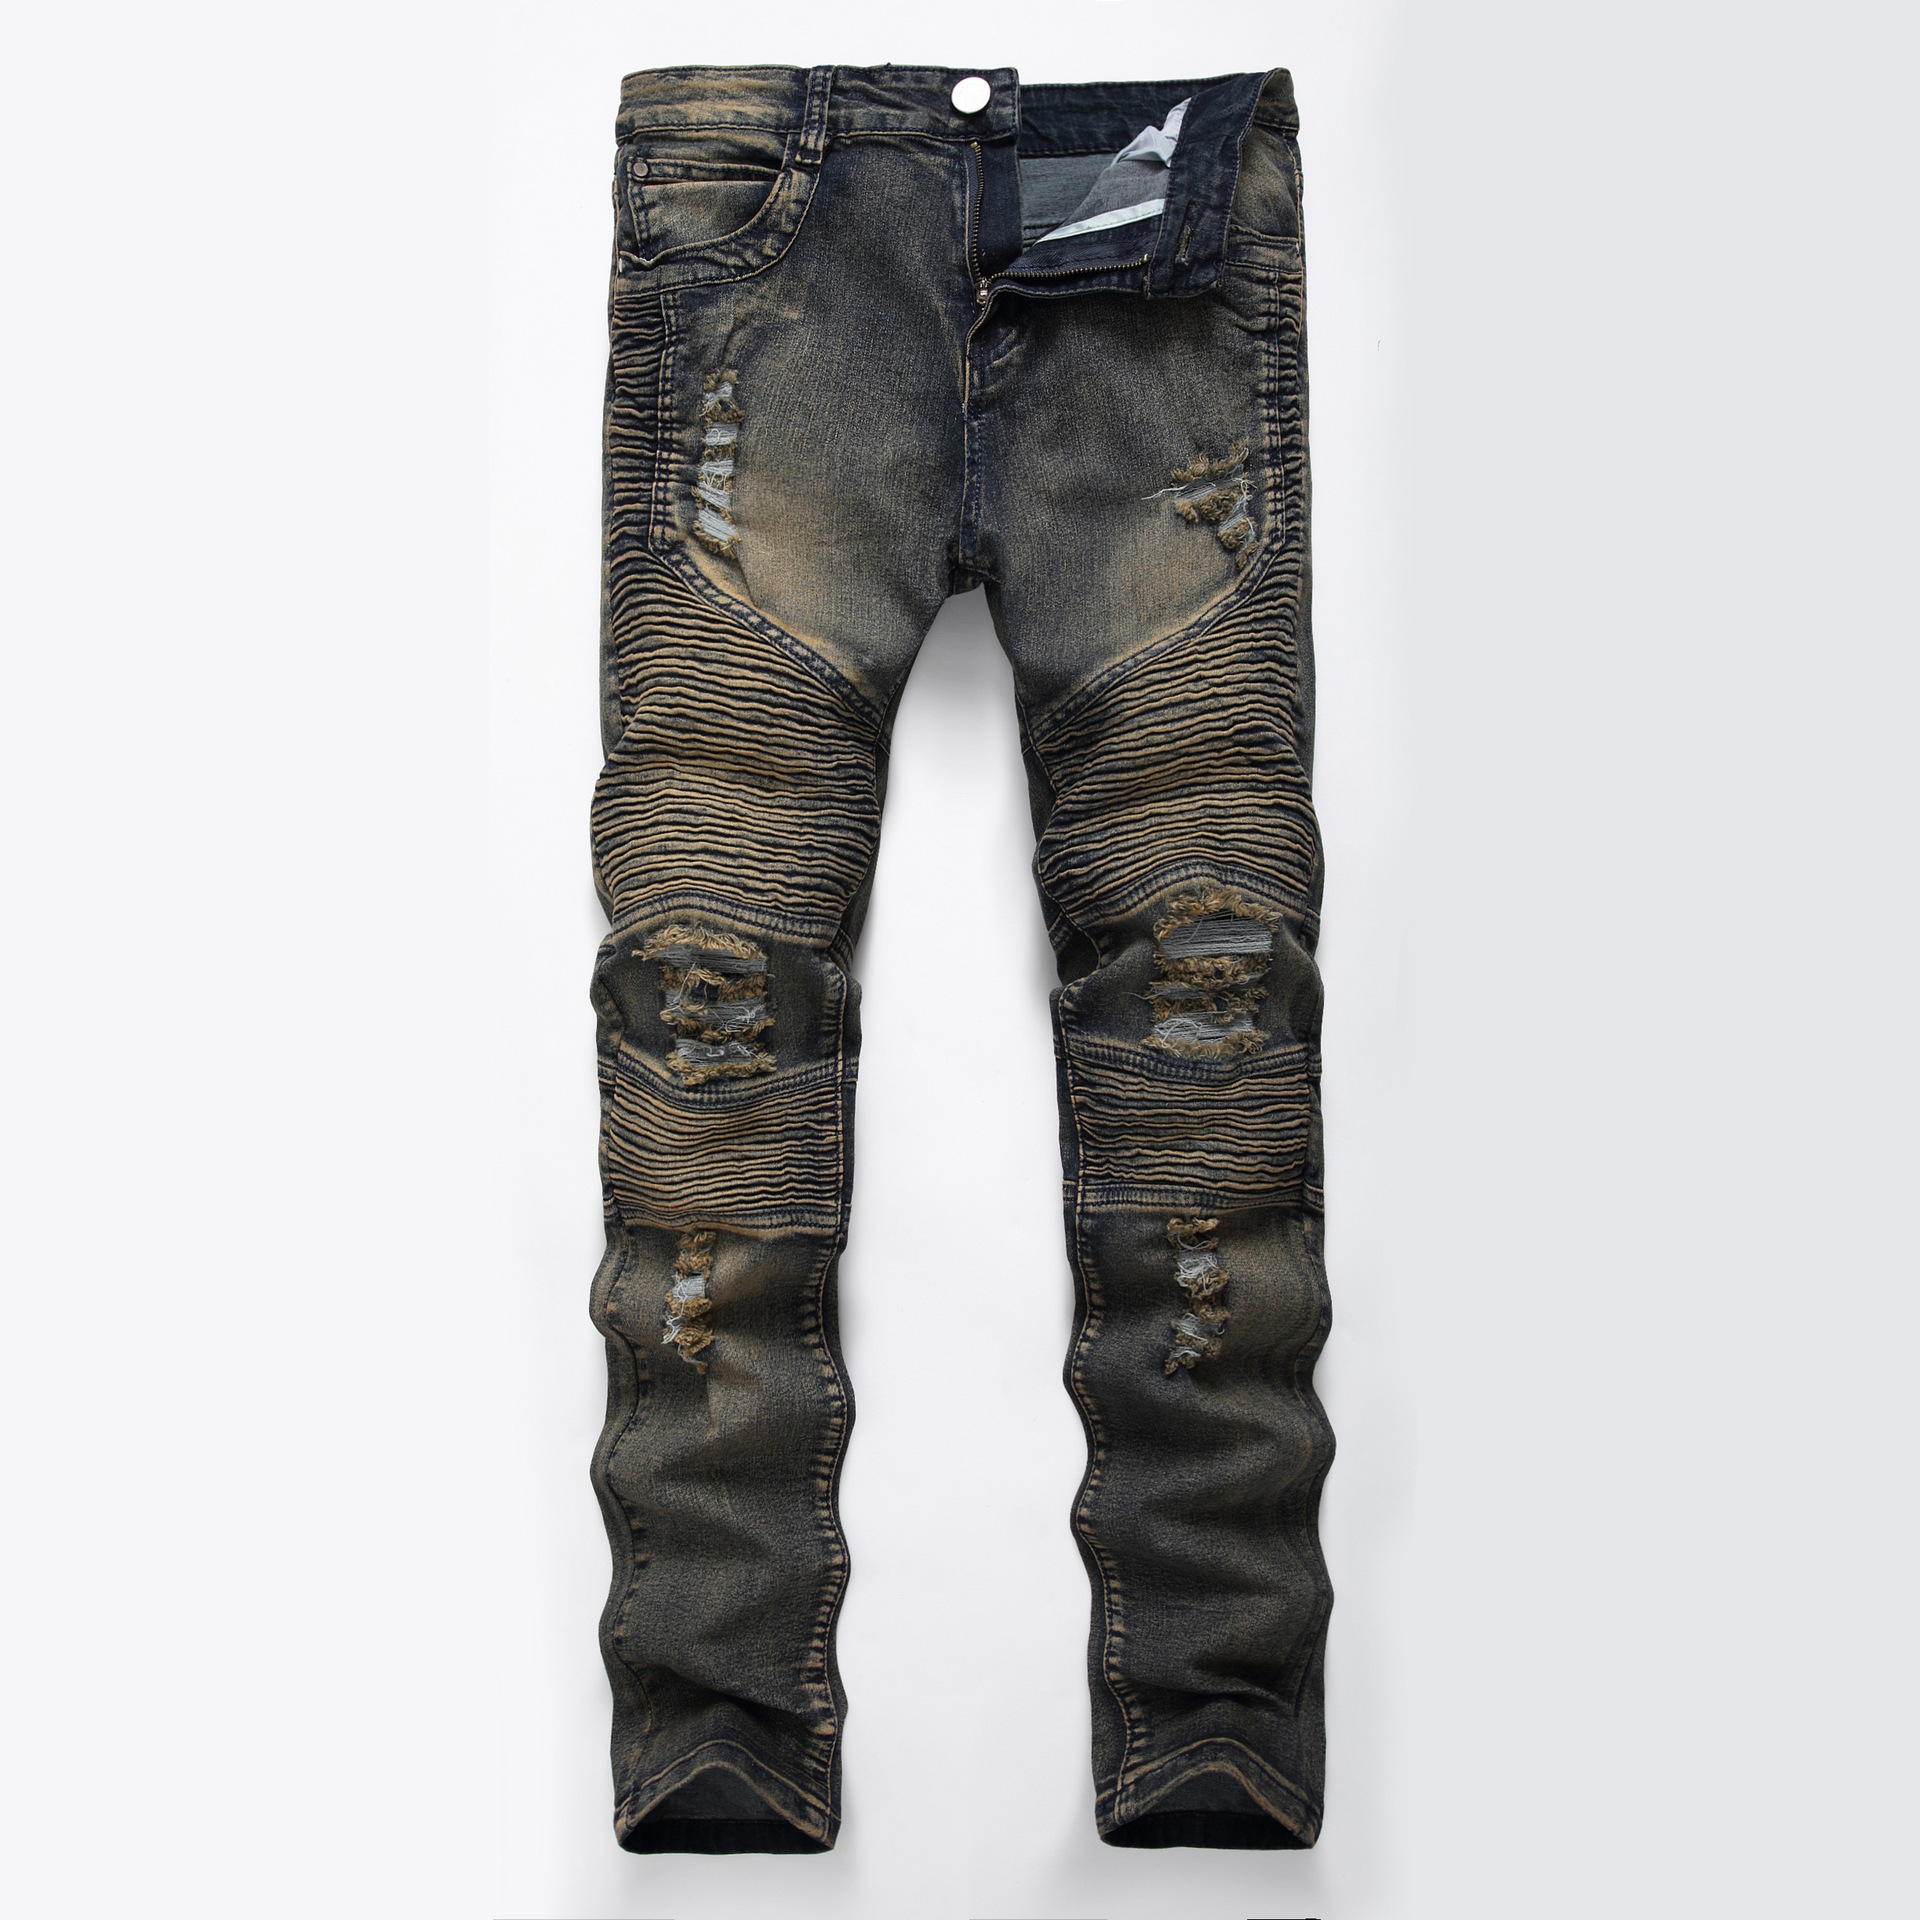 High Quality Motorcycle Pants Punk Homme Blue Print Biker Men Jeans Ripped Slim Fit Hip Hop Denim Trousers Men`s Jeans airgracias elasticity jeans men high quality brand denim cotton biker jean regular fit pants trousers size 28 42 black blue